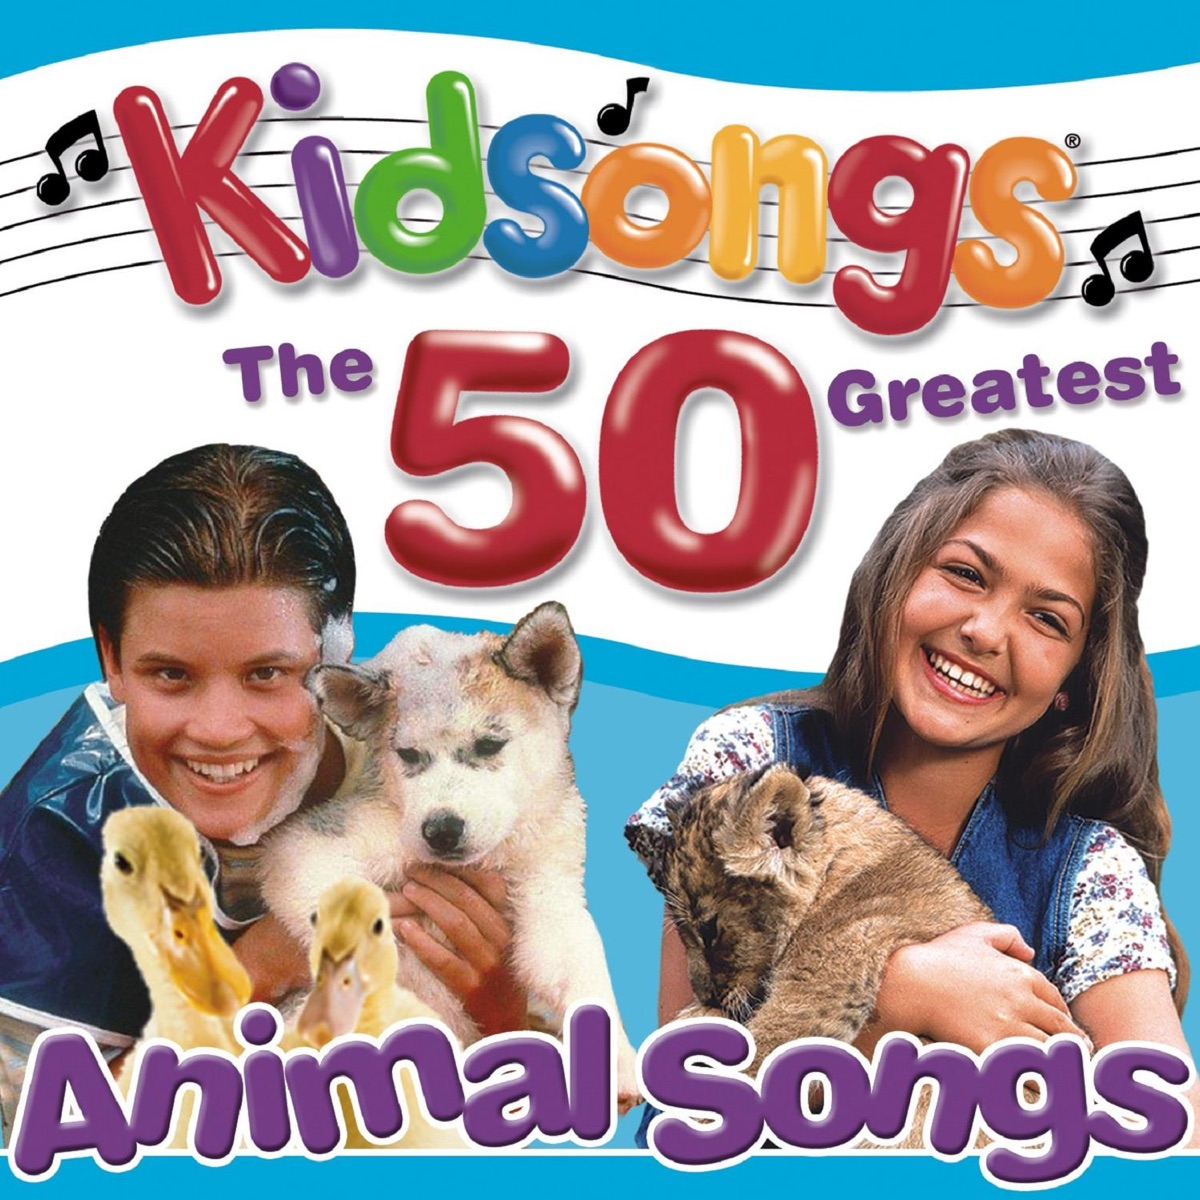 Kidsongs: The 50 Greatest Animal Songs Album Cover by Kidsongs